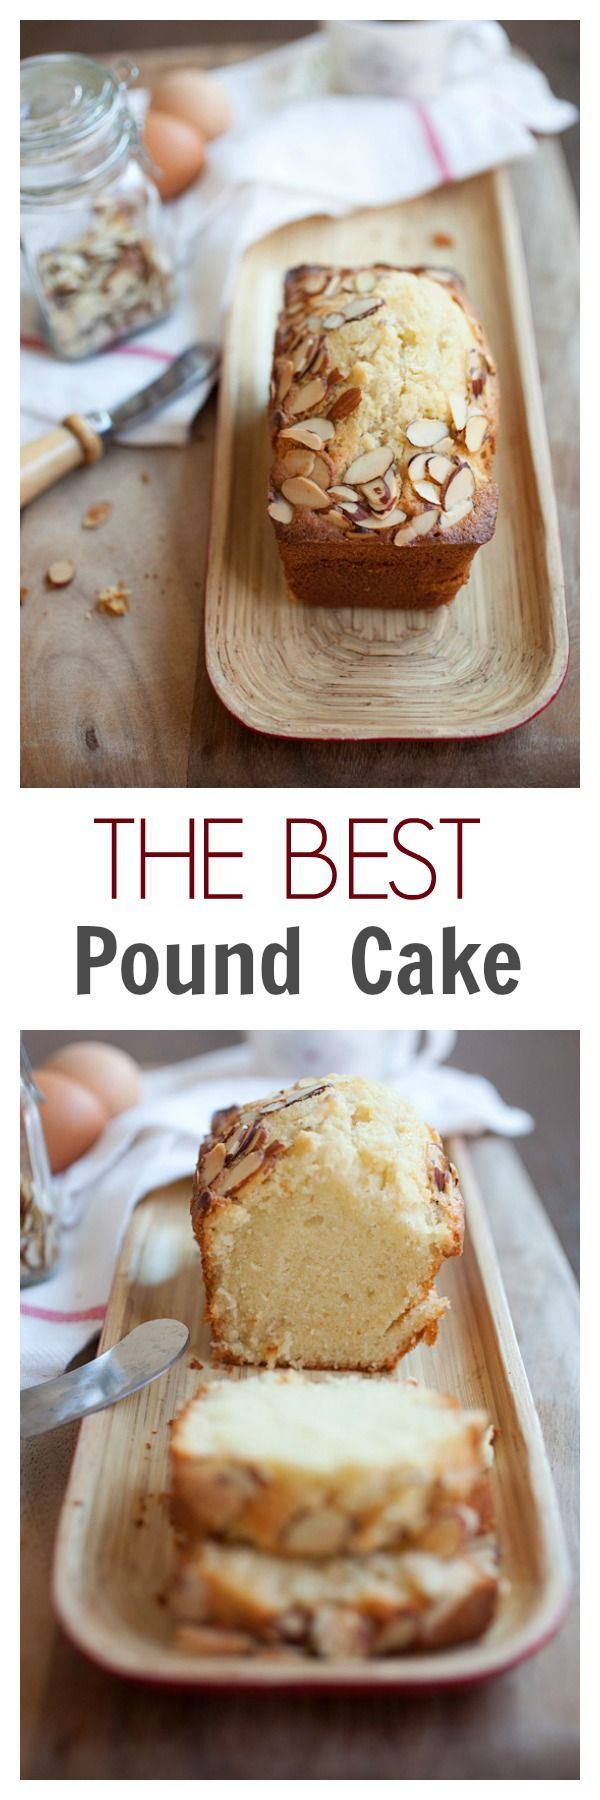 The BEST and EASIEST Pound Cake - super EASY recipe for rich, buttery and sweet pound cake ever | rasamalaysia.com